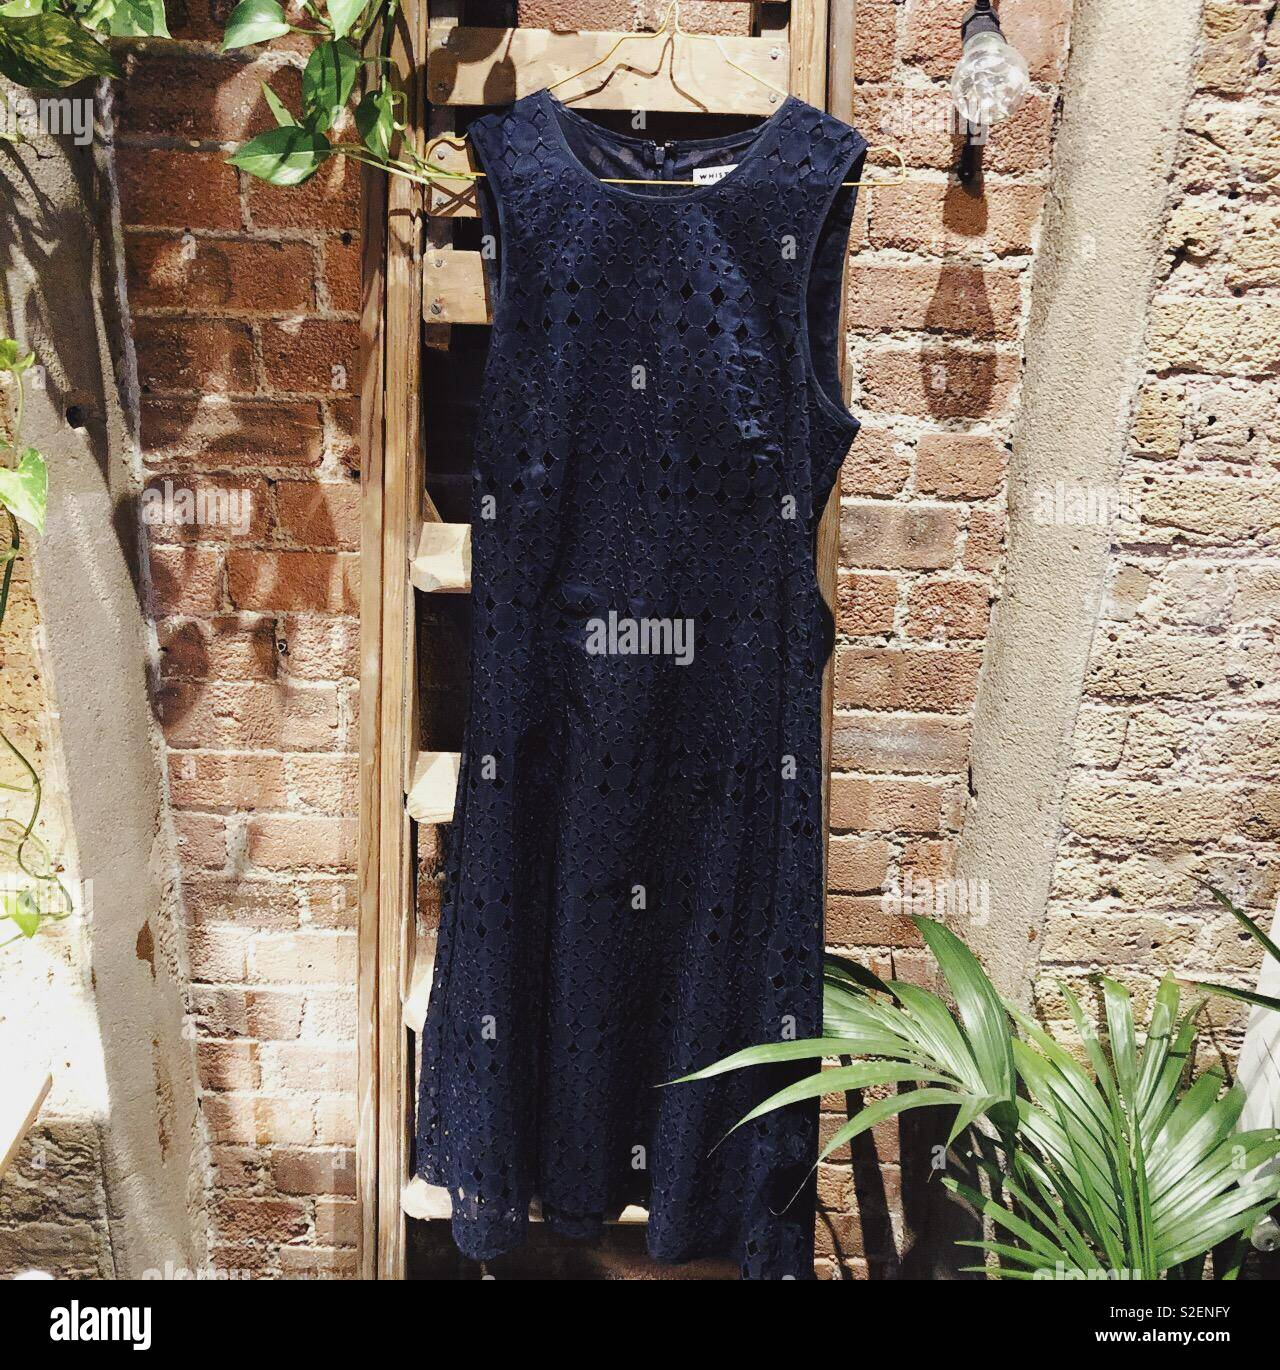 Navy blue occasion dress hanging on vintage ladder against stone colored brick wall - Stock Image